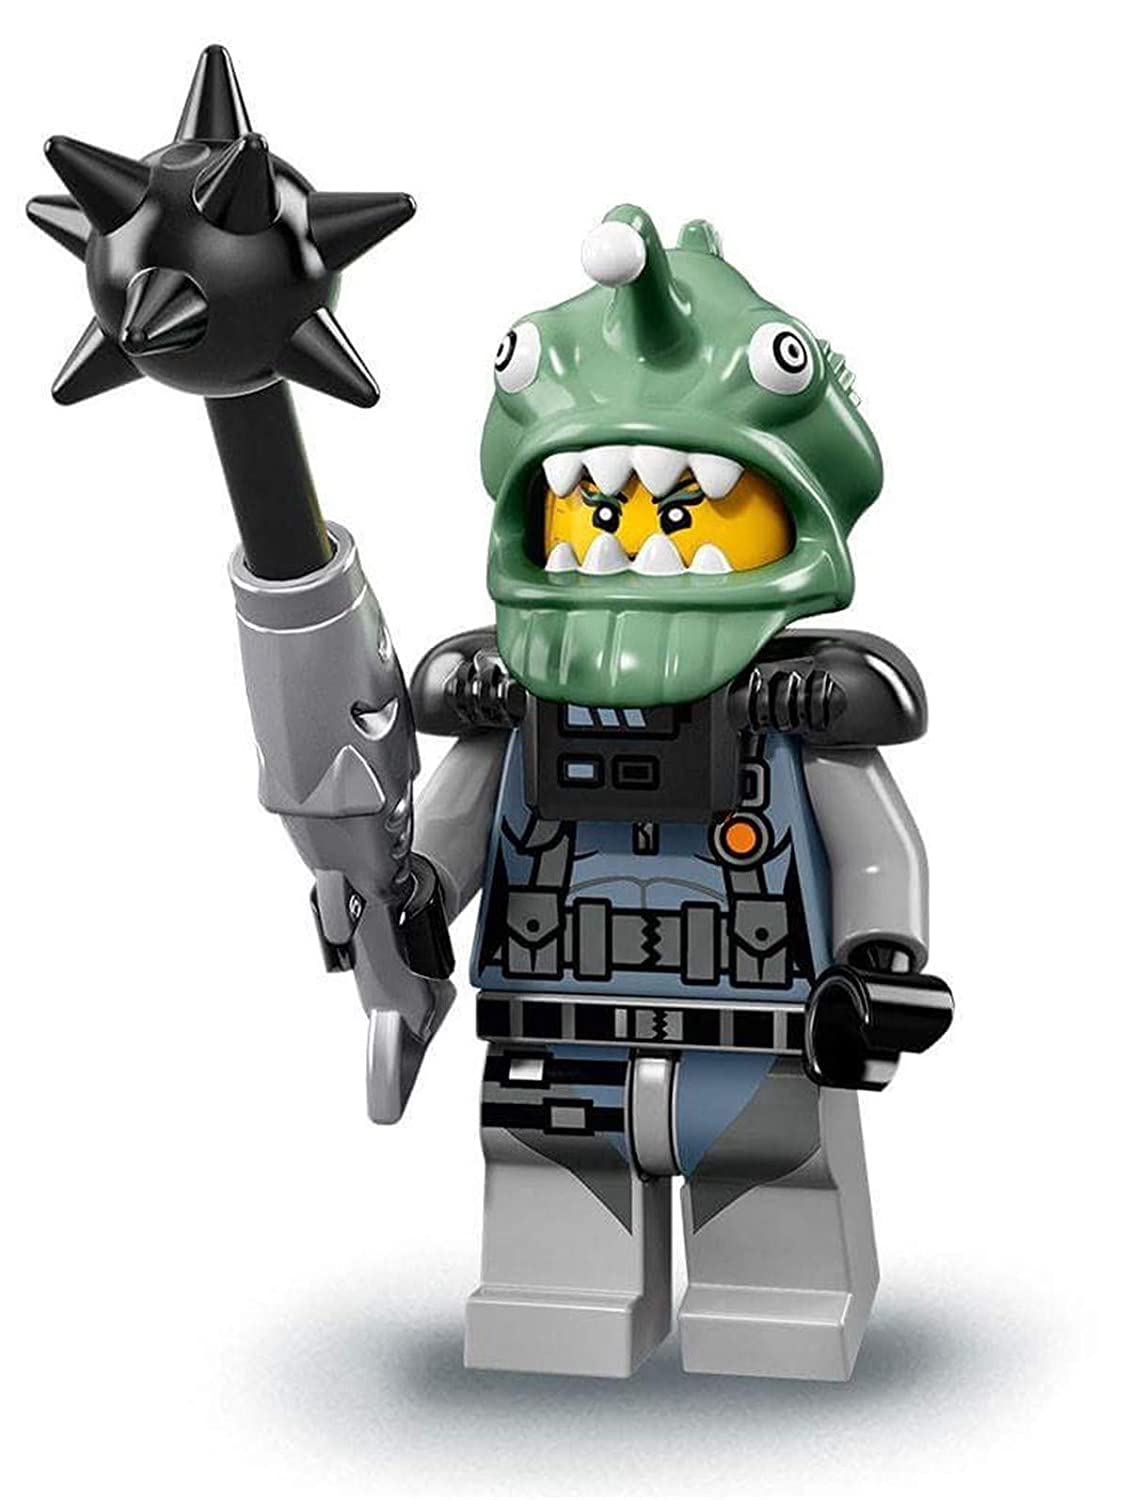 LEGO Ninjago Movie Minifigures Series 71019 - Shark Army Angler